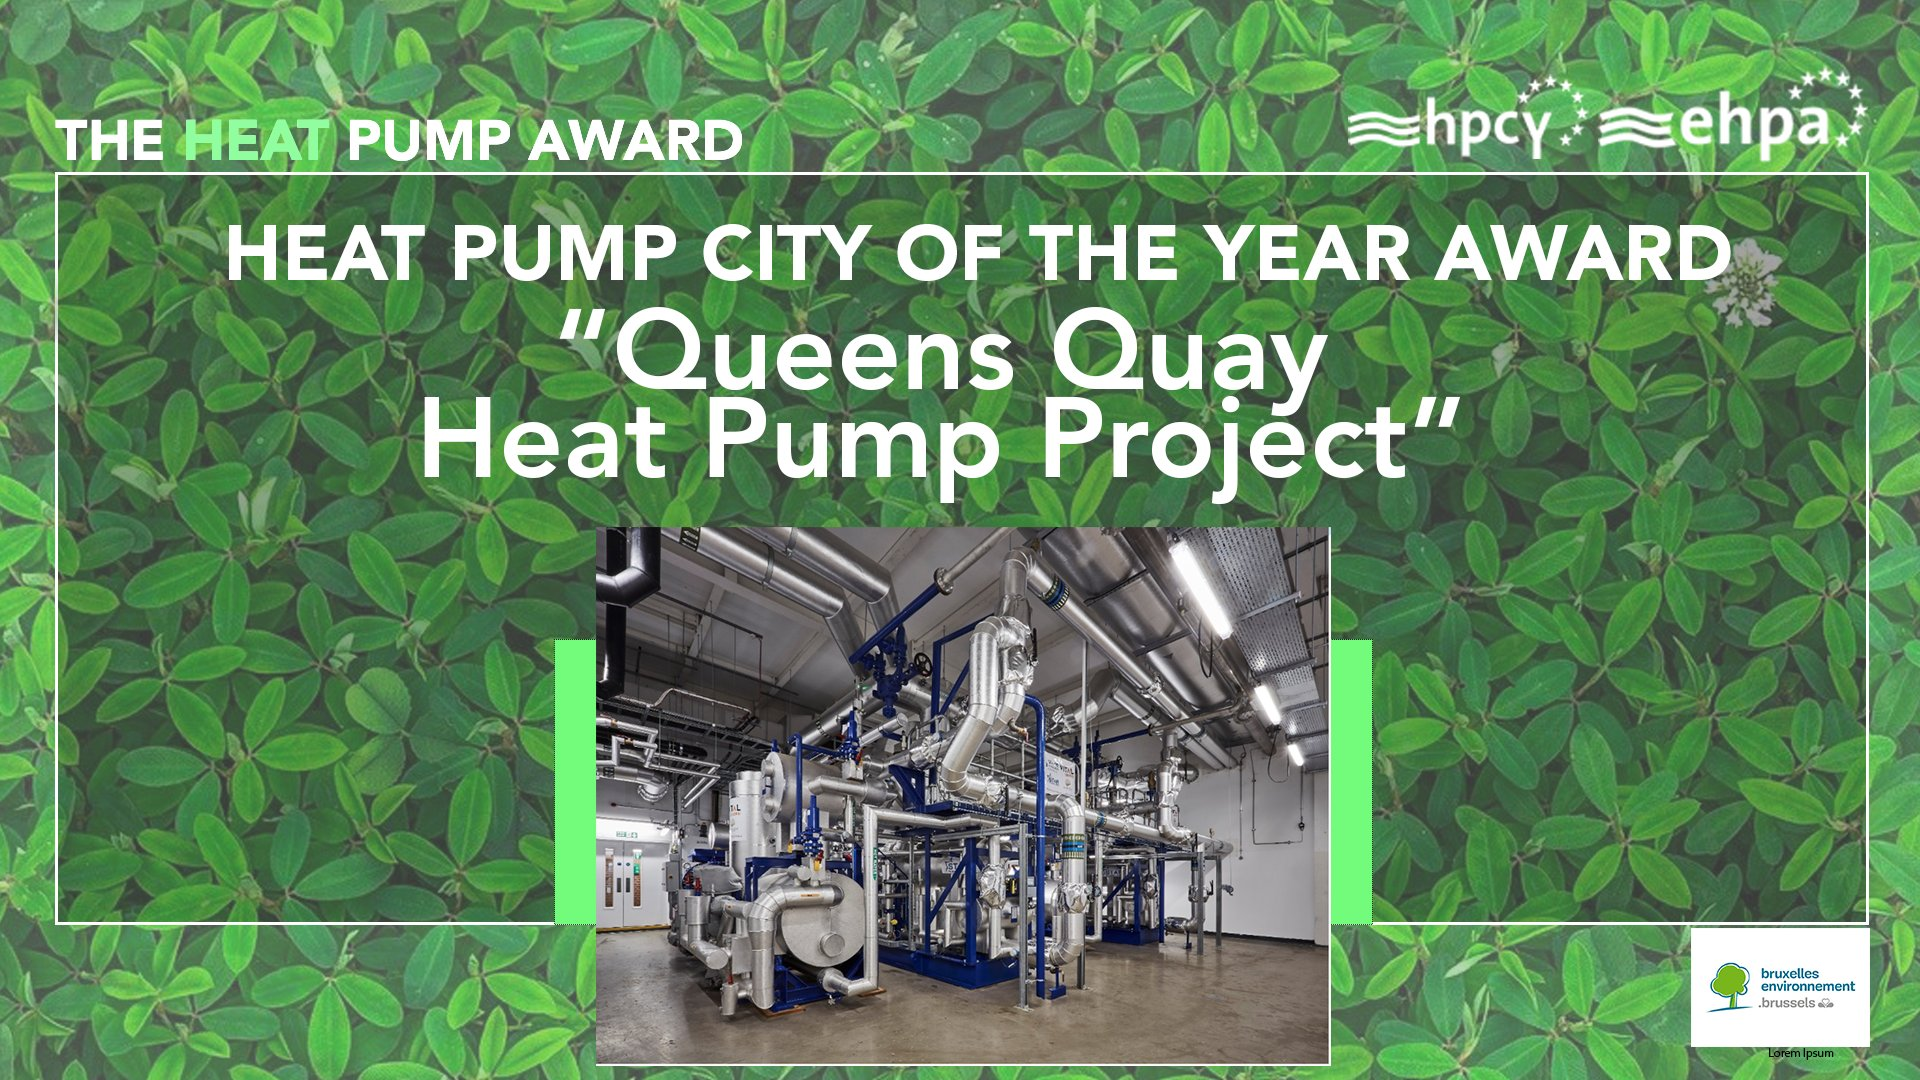 Queens Quay wins Heat Pump City of the Year